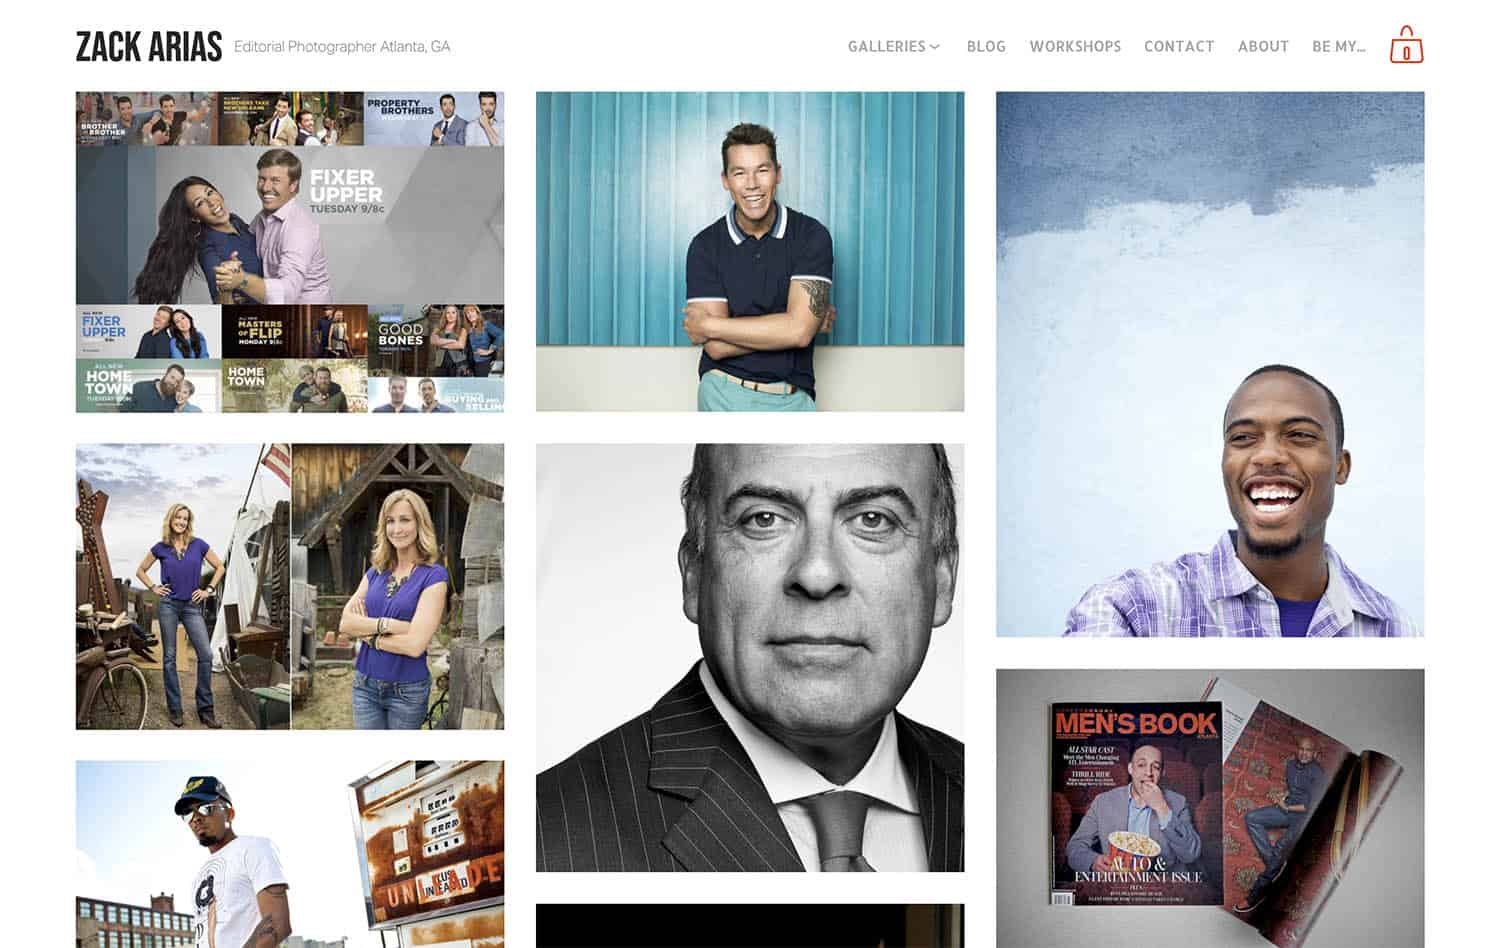 The Clients page on Zack Arias' website showcases a series of photographs he's made of corporate clients.